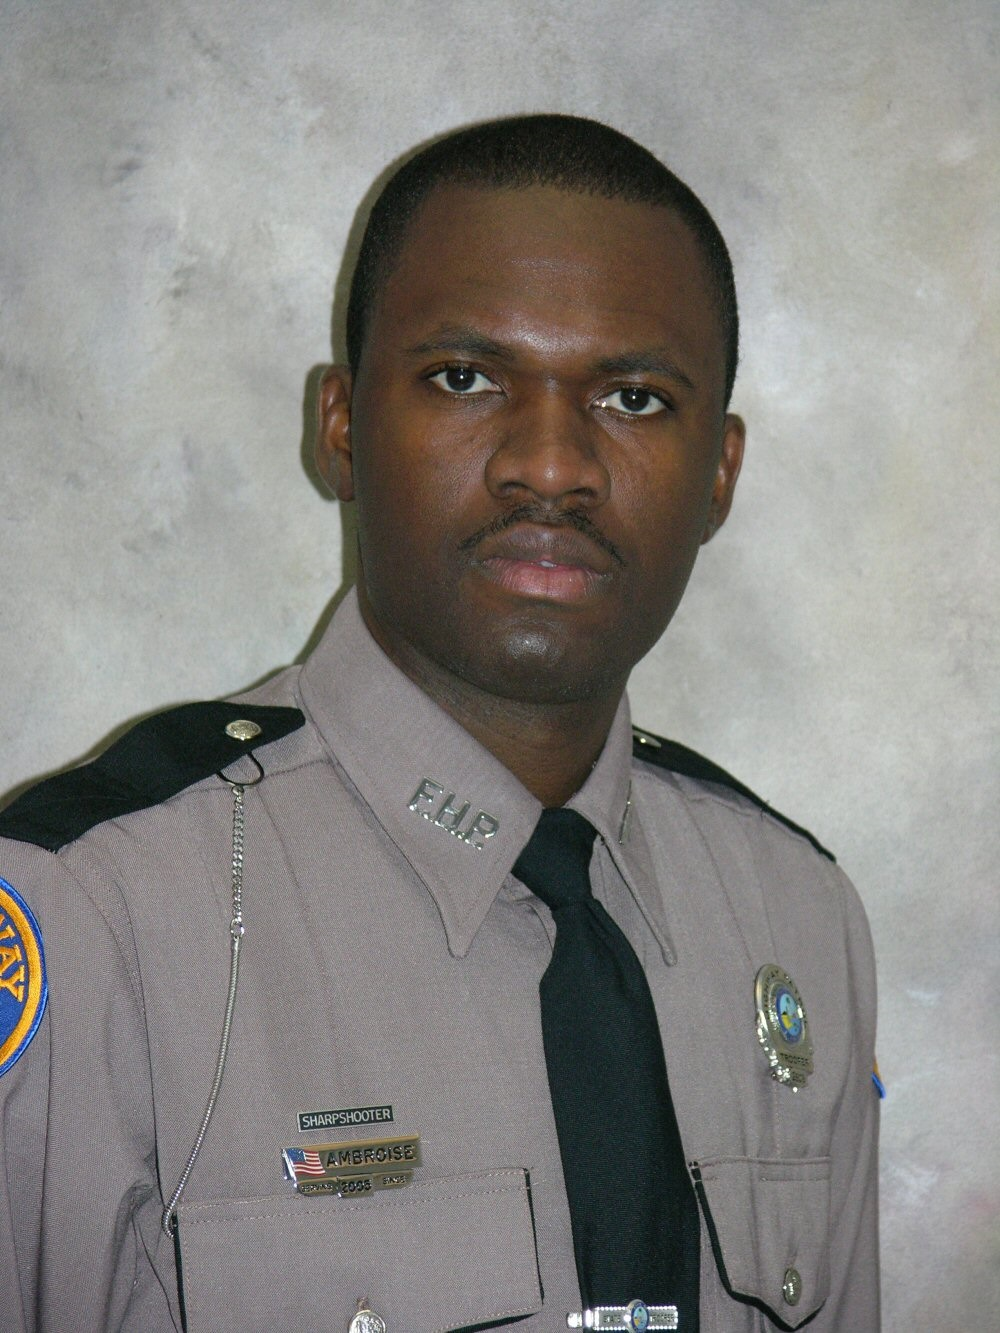 Trooper Patrick Ambroise | Florida Highway Patrol, Florida